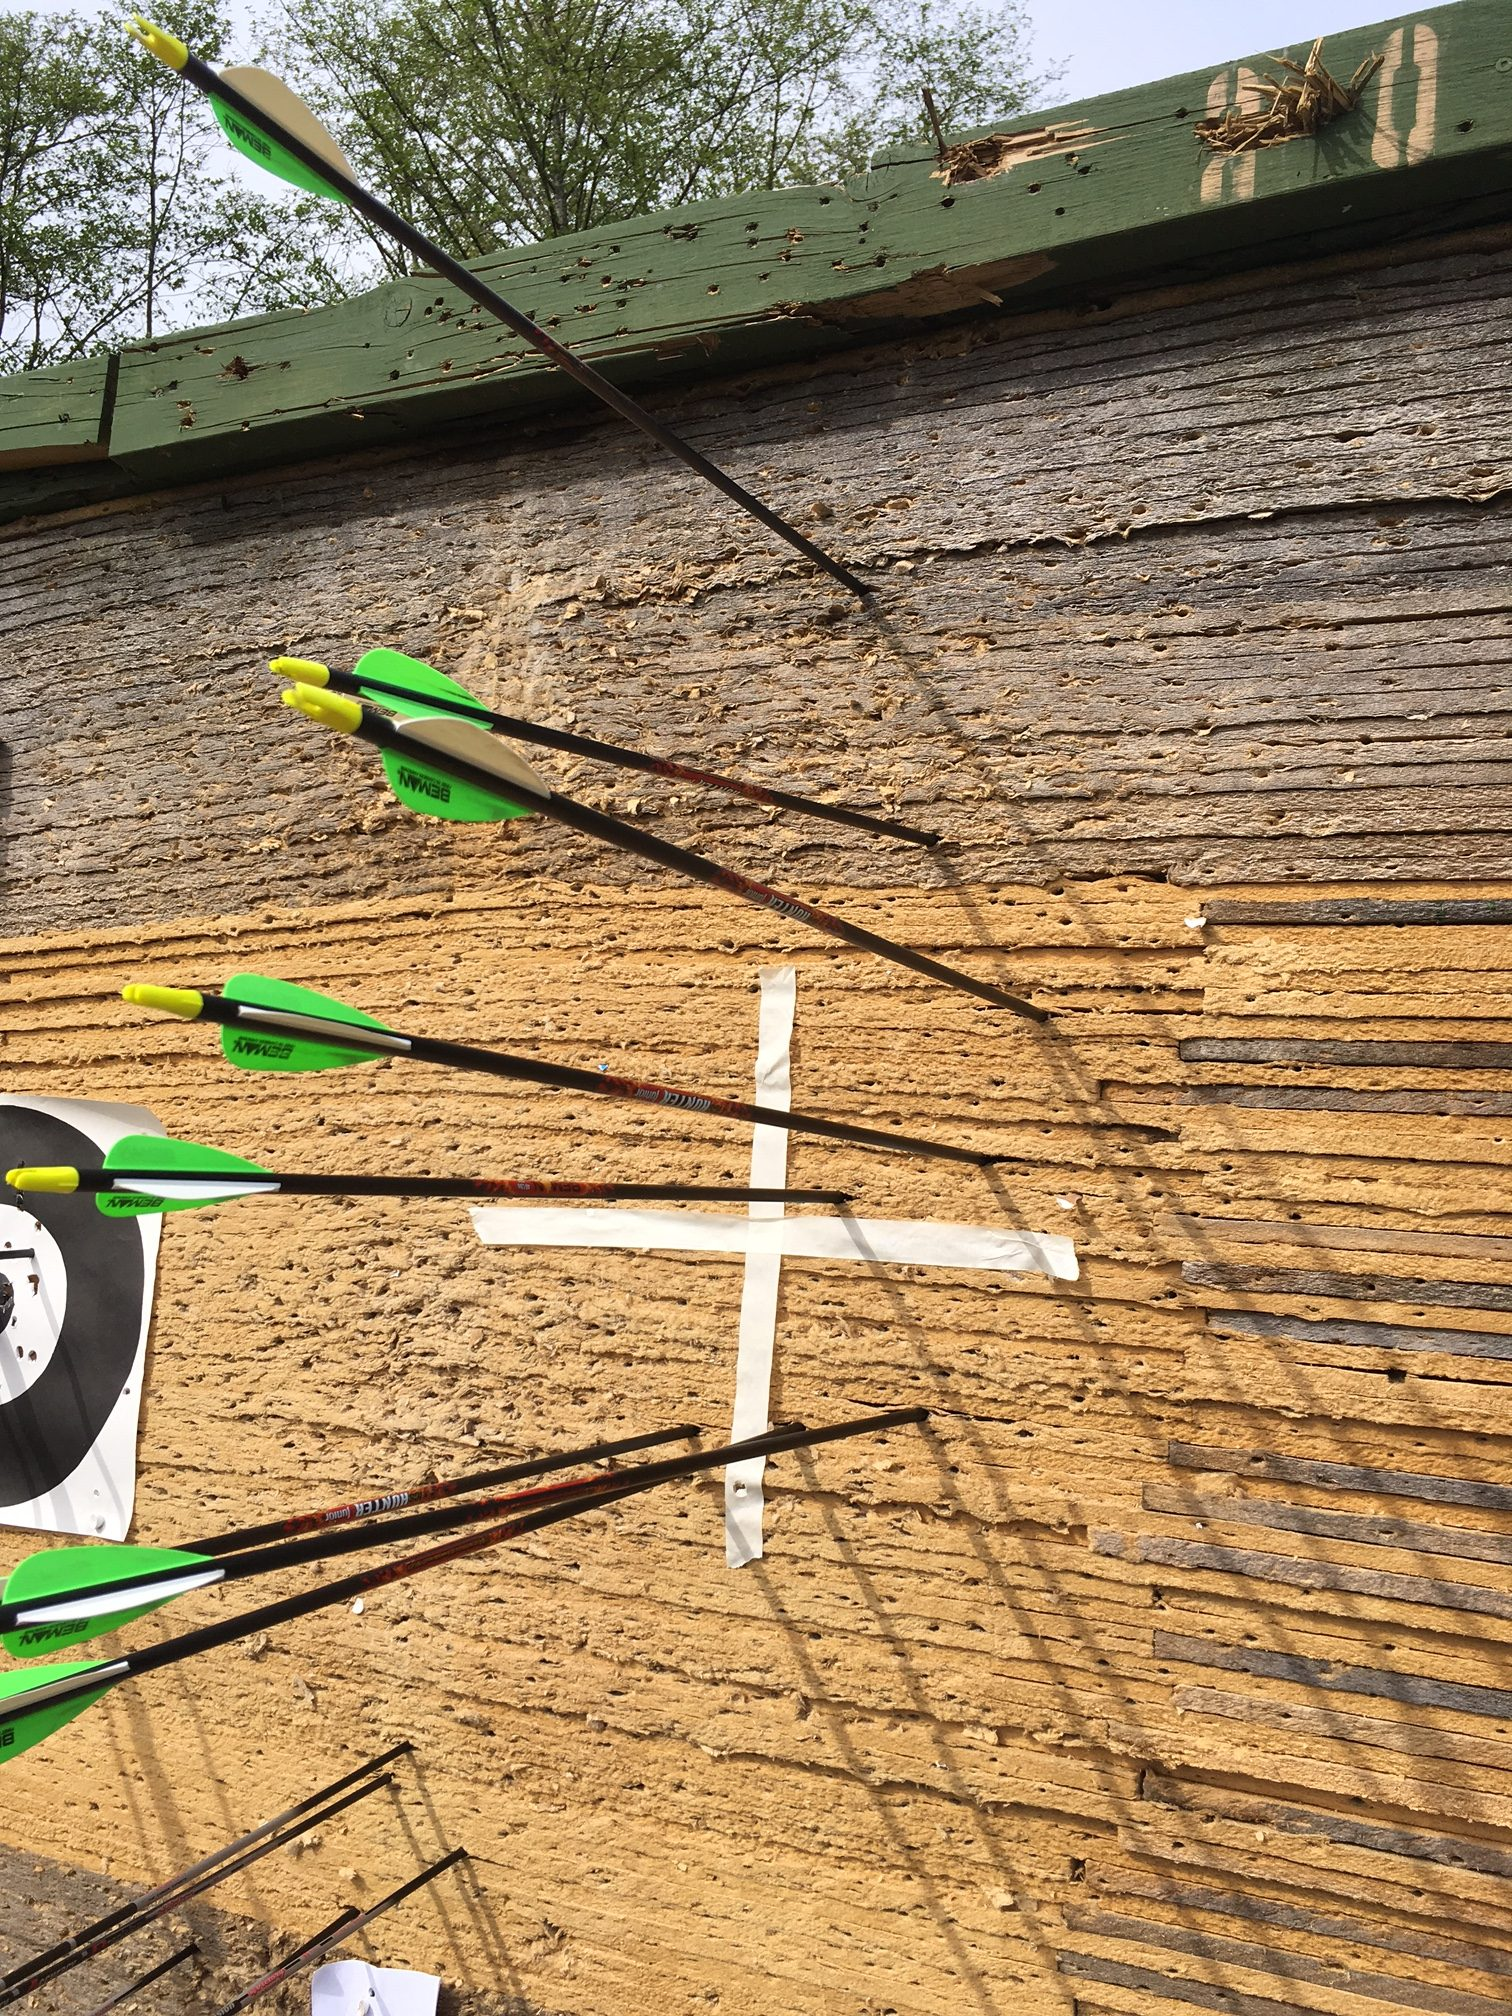 A few things you probably didn't know about archery